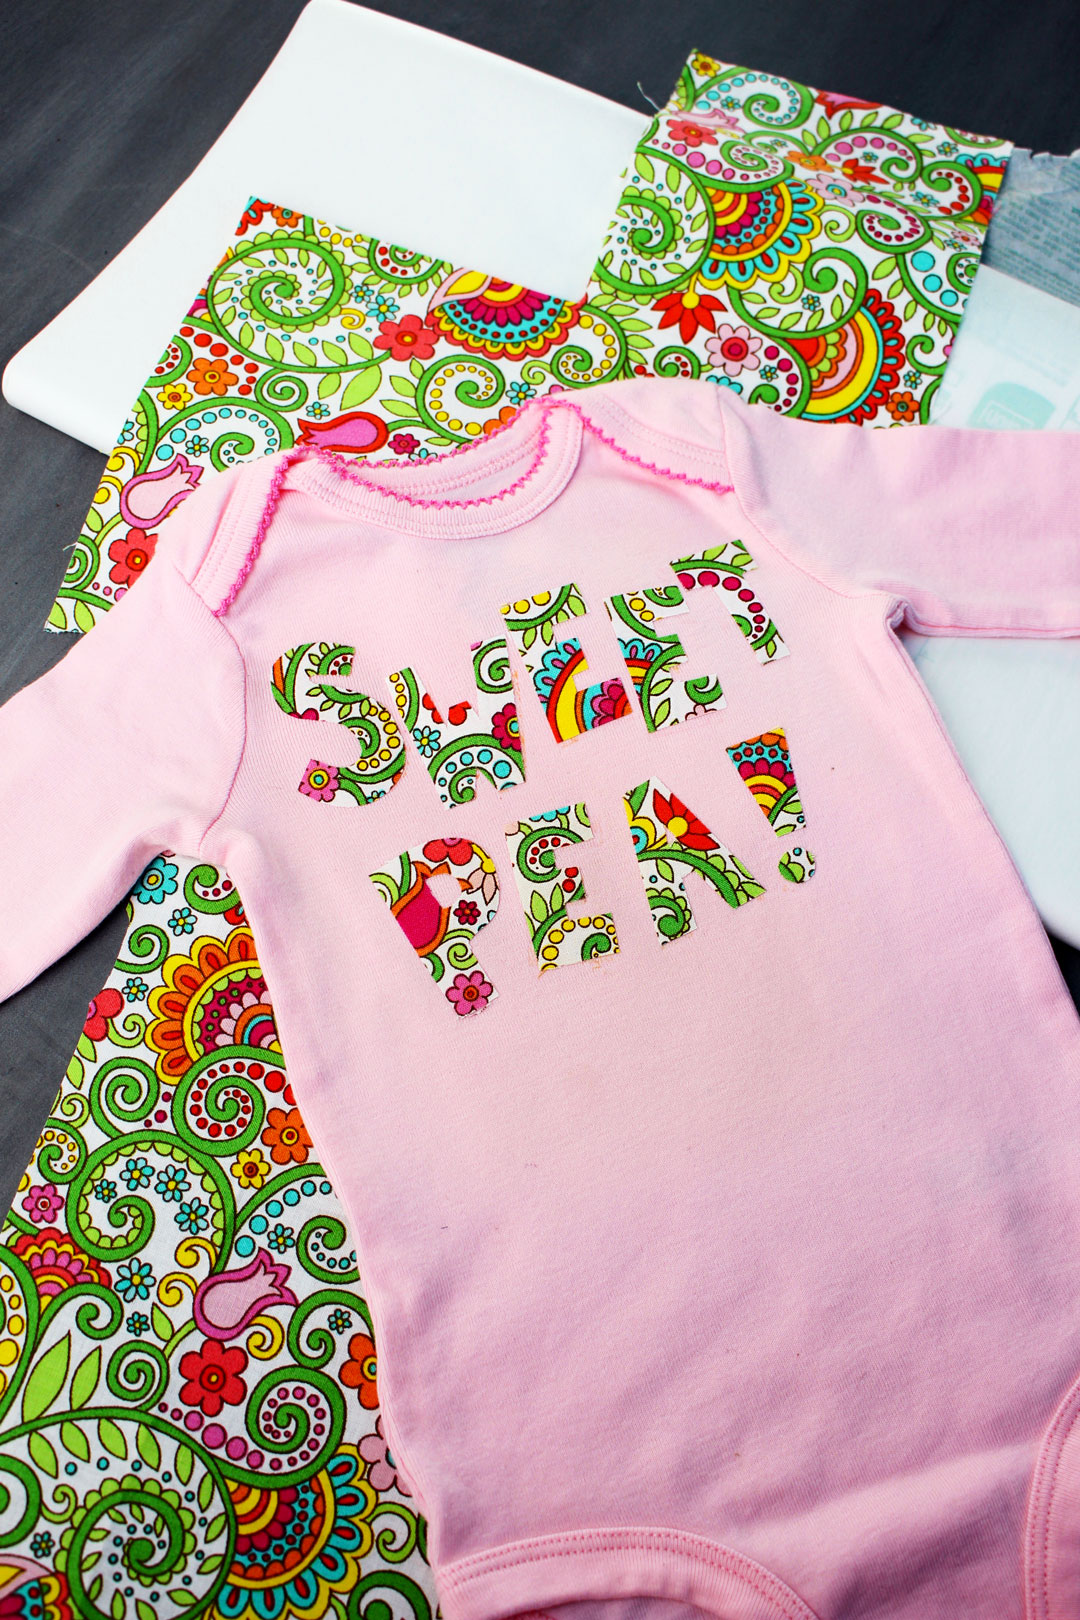 Easy Diy Baby Onesie Gift Welcome To Nana S